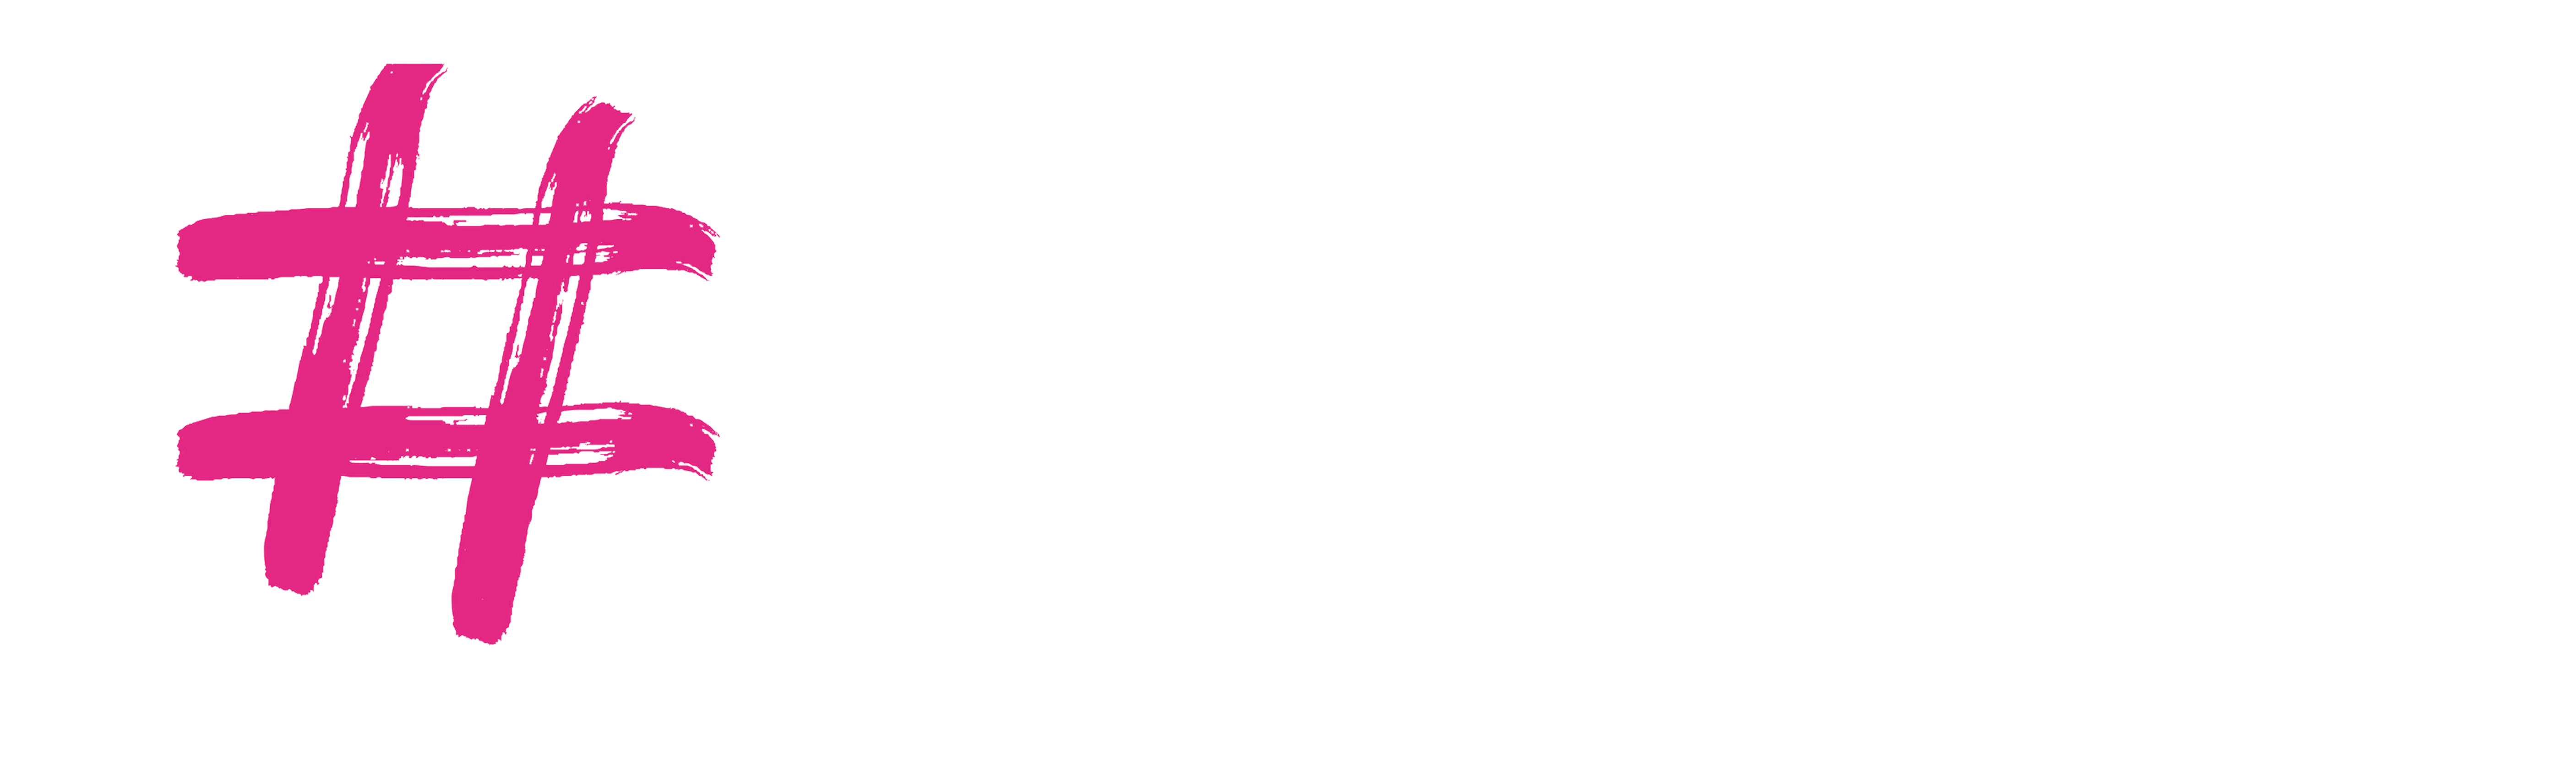 #BankSocial 2017 Conference